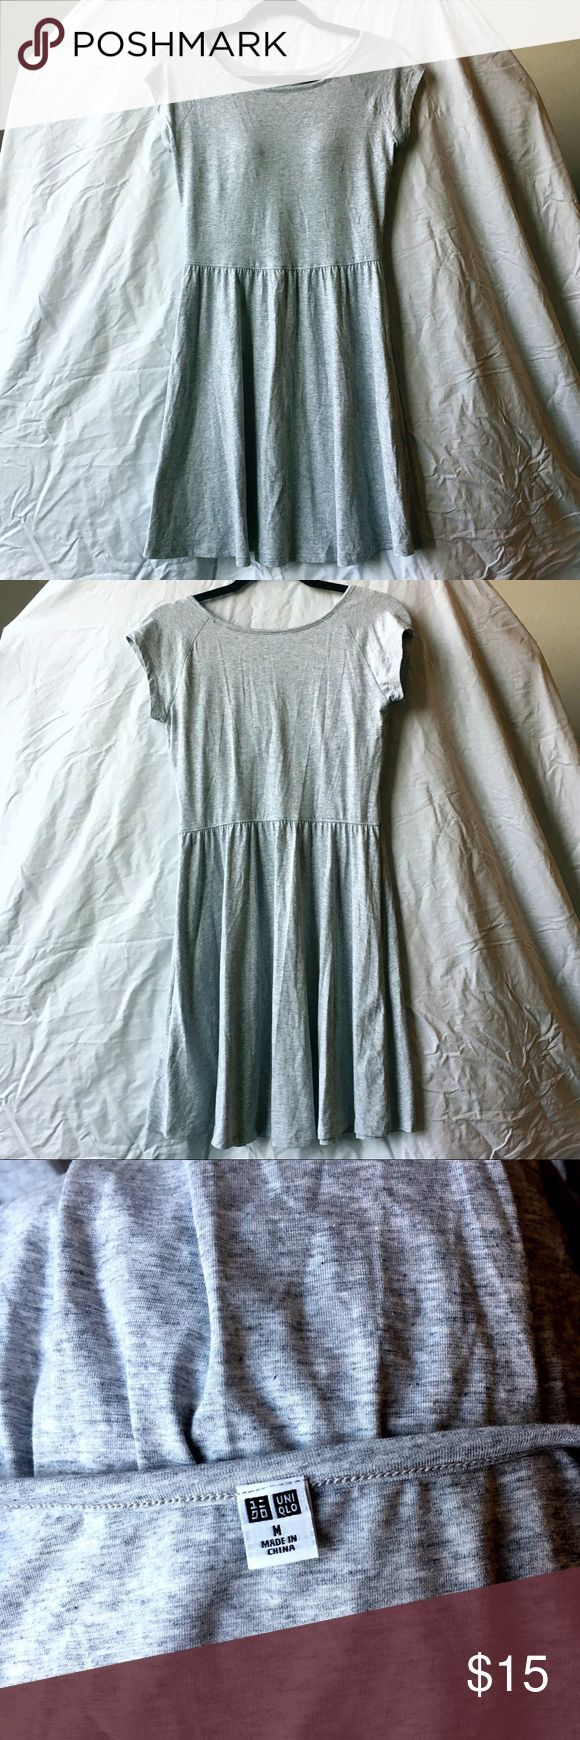 "New Gray Uniqlo Short-sleeved Dress New without tags. Short sleeved dress with built in bra in size Medium. Bust is 32"" but has a lot of stretch and it is 34"" long. It is 68% modal, 27% cotton, and 5% spandex. Uniqlo Dresses Mini"